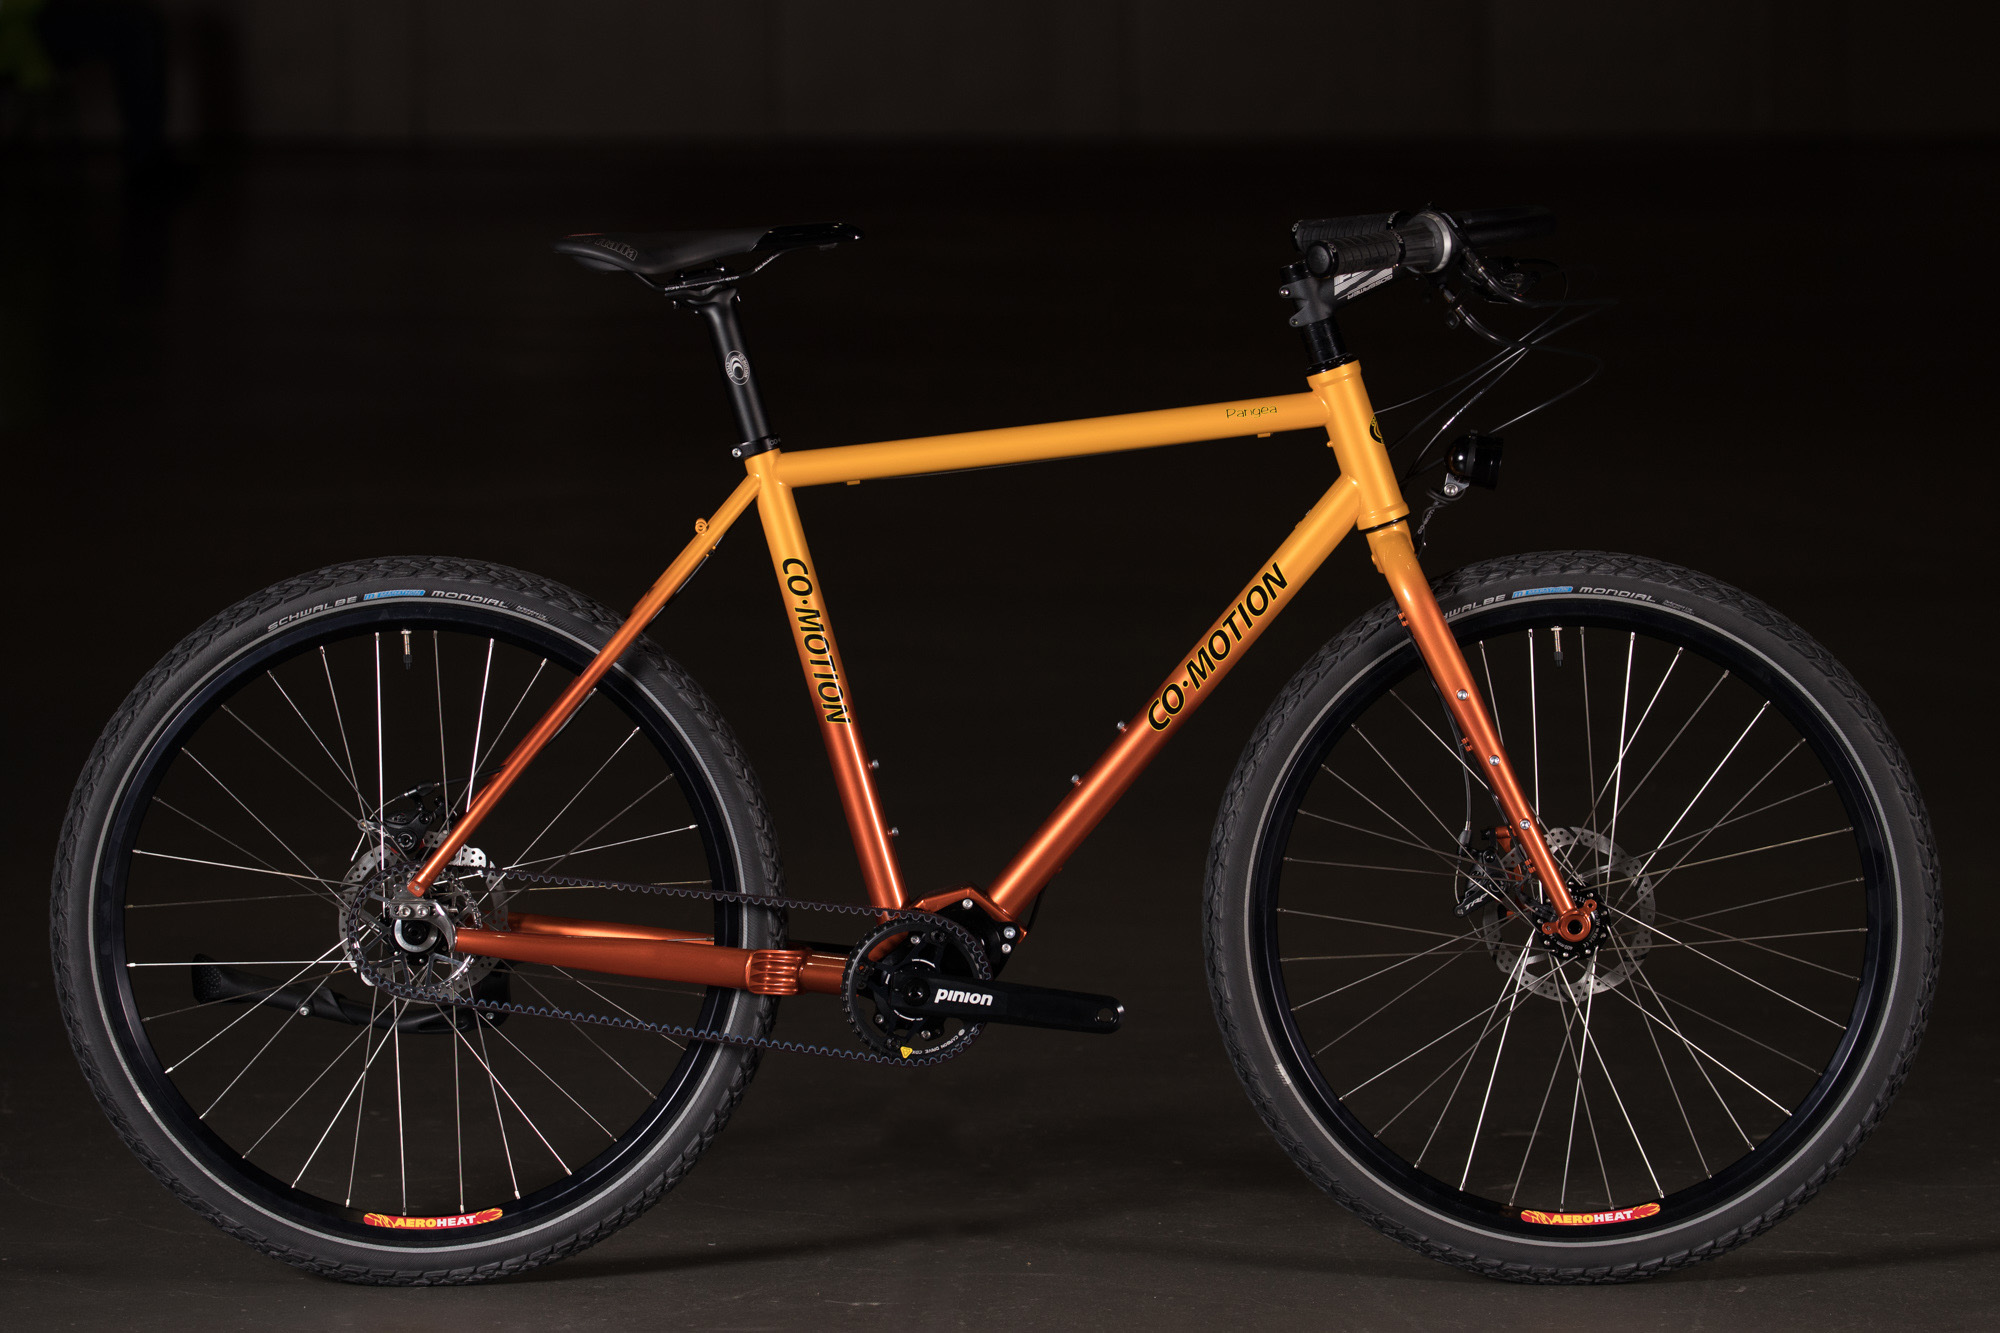 2018 Nahbs Sunset Fade Co Motion Pangea With Pinion